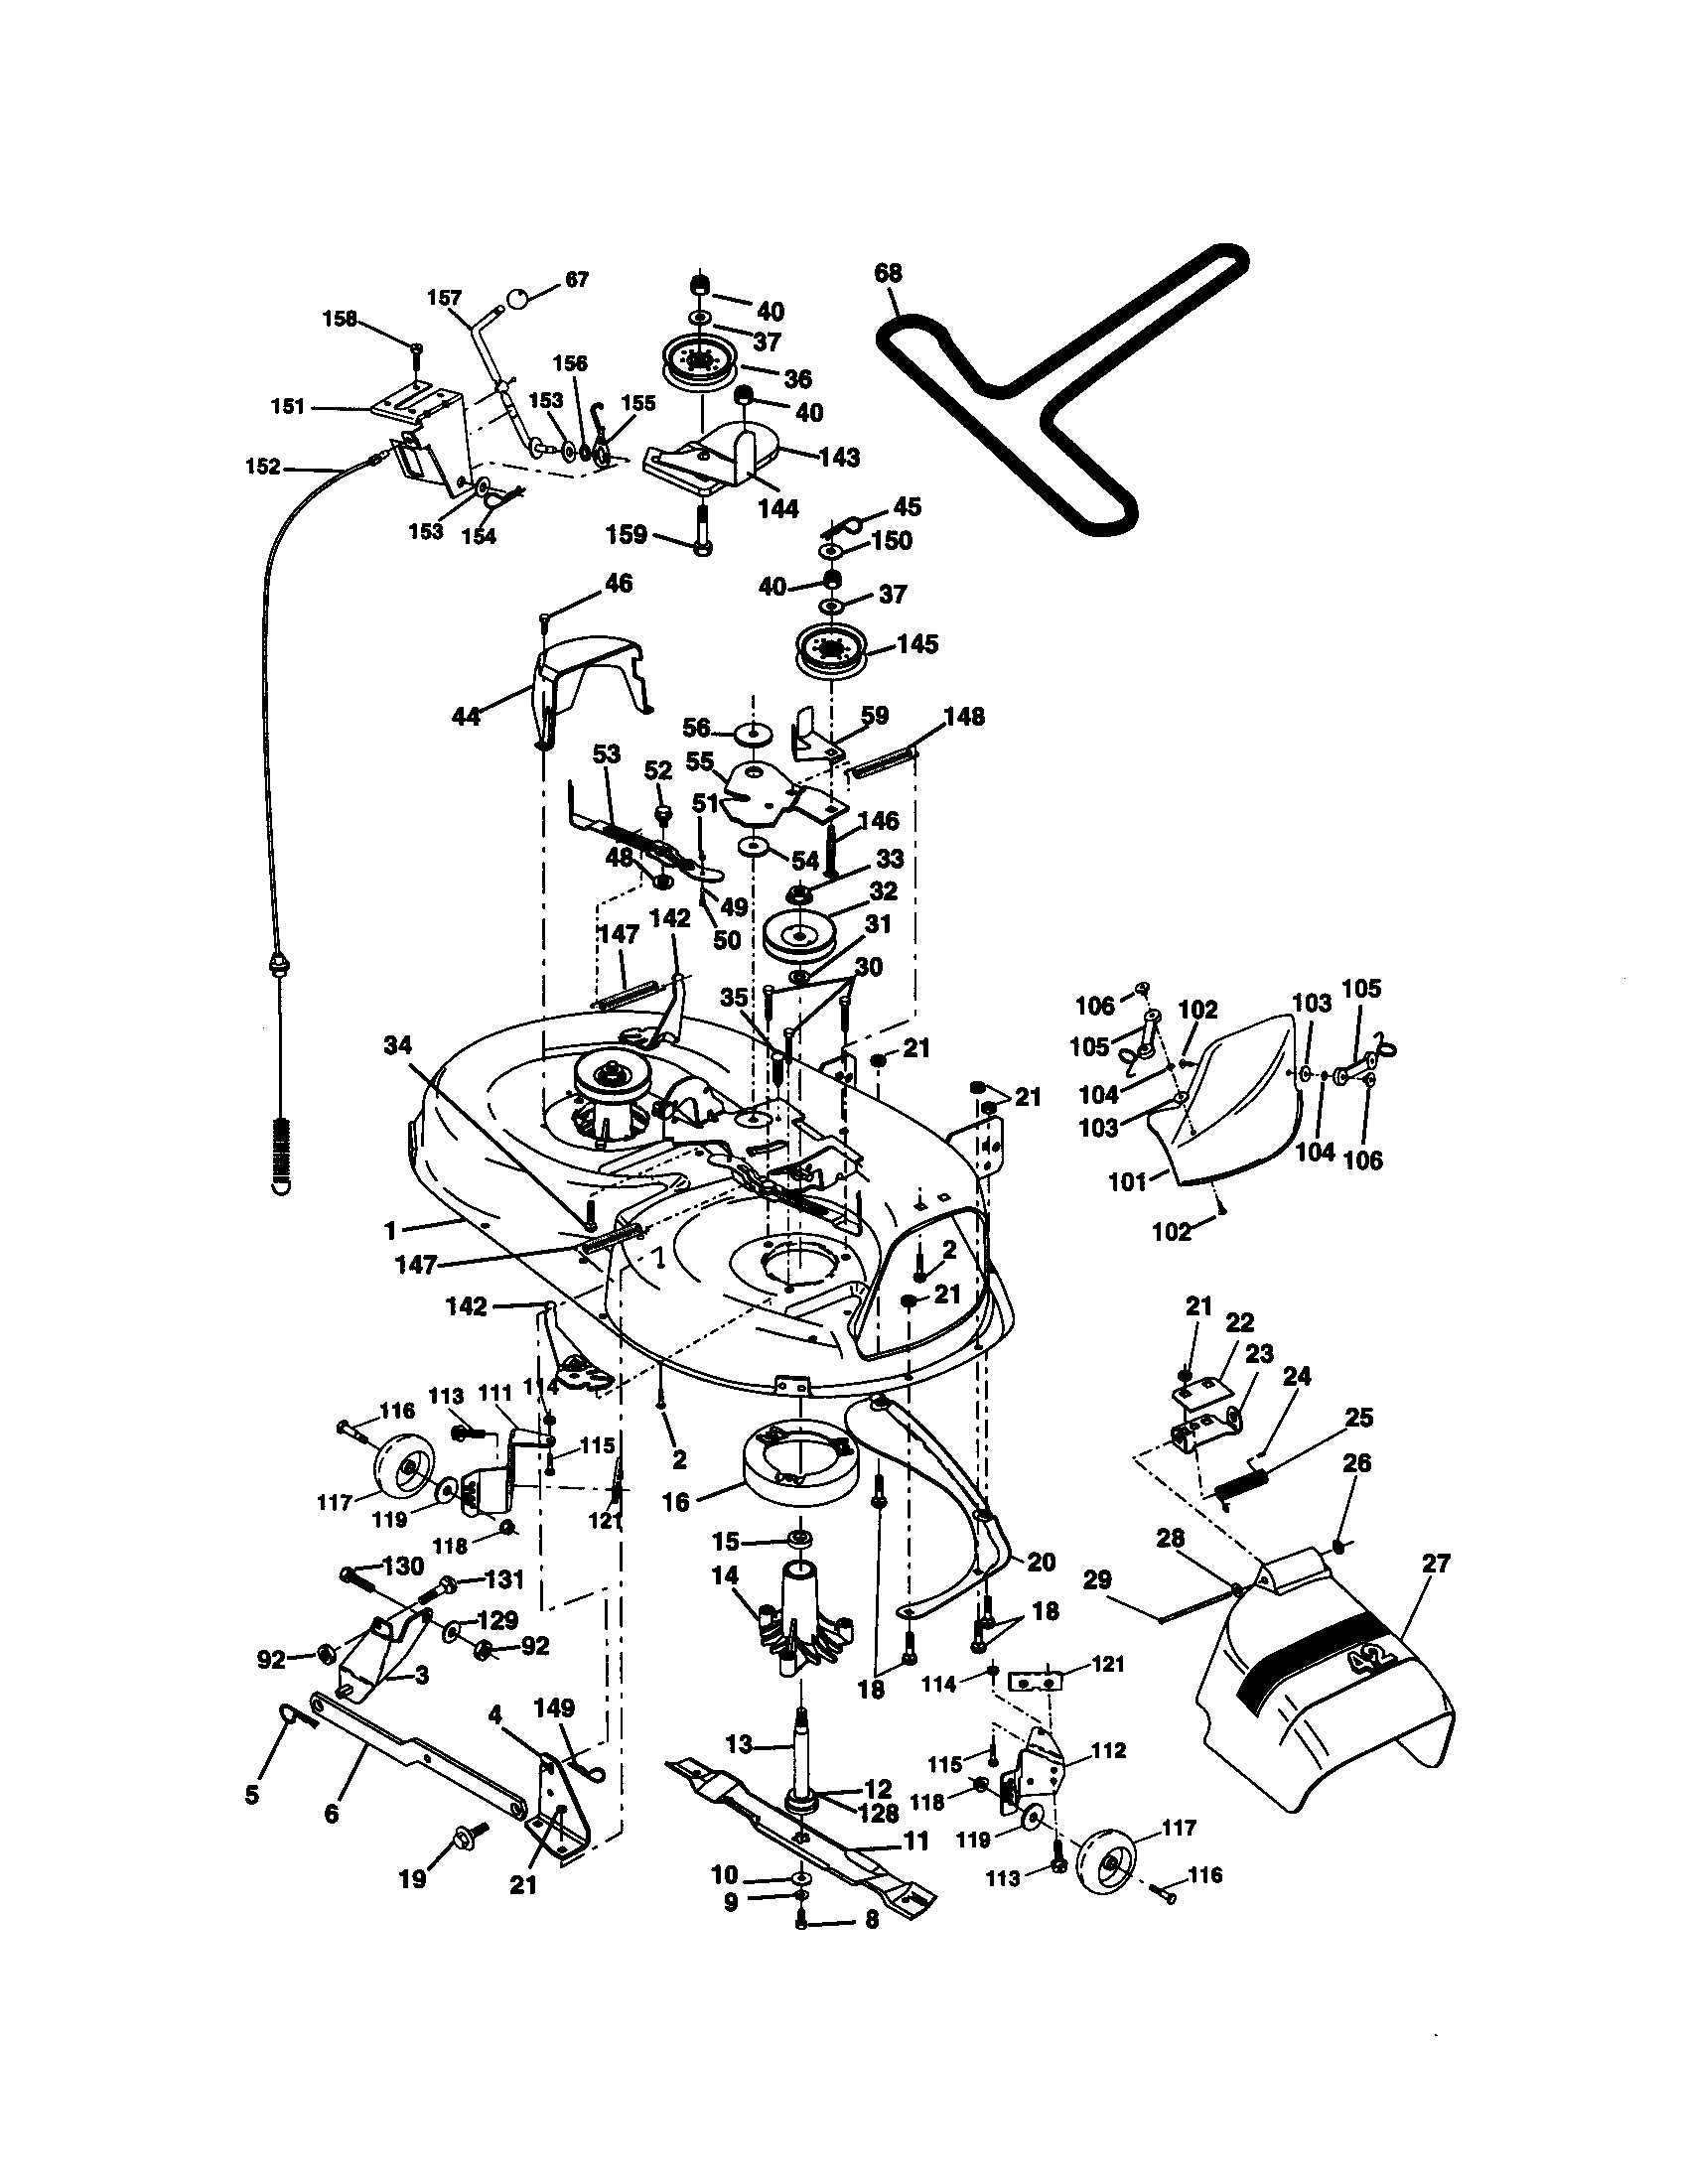 Briggs and stratton 17 5 hp engine diagram craftsman model lawn tractor genuine parts of briggs